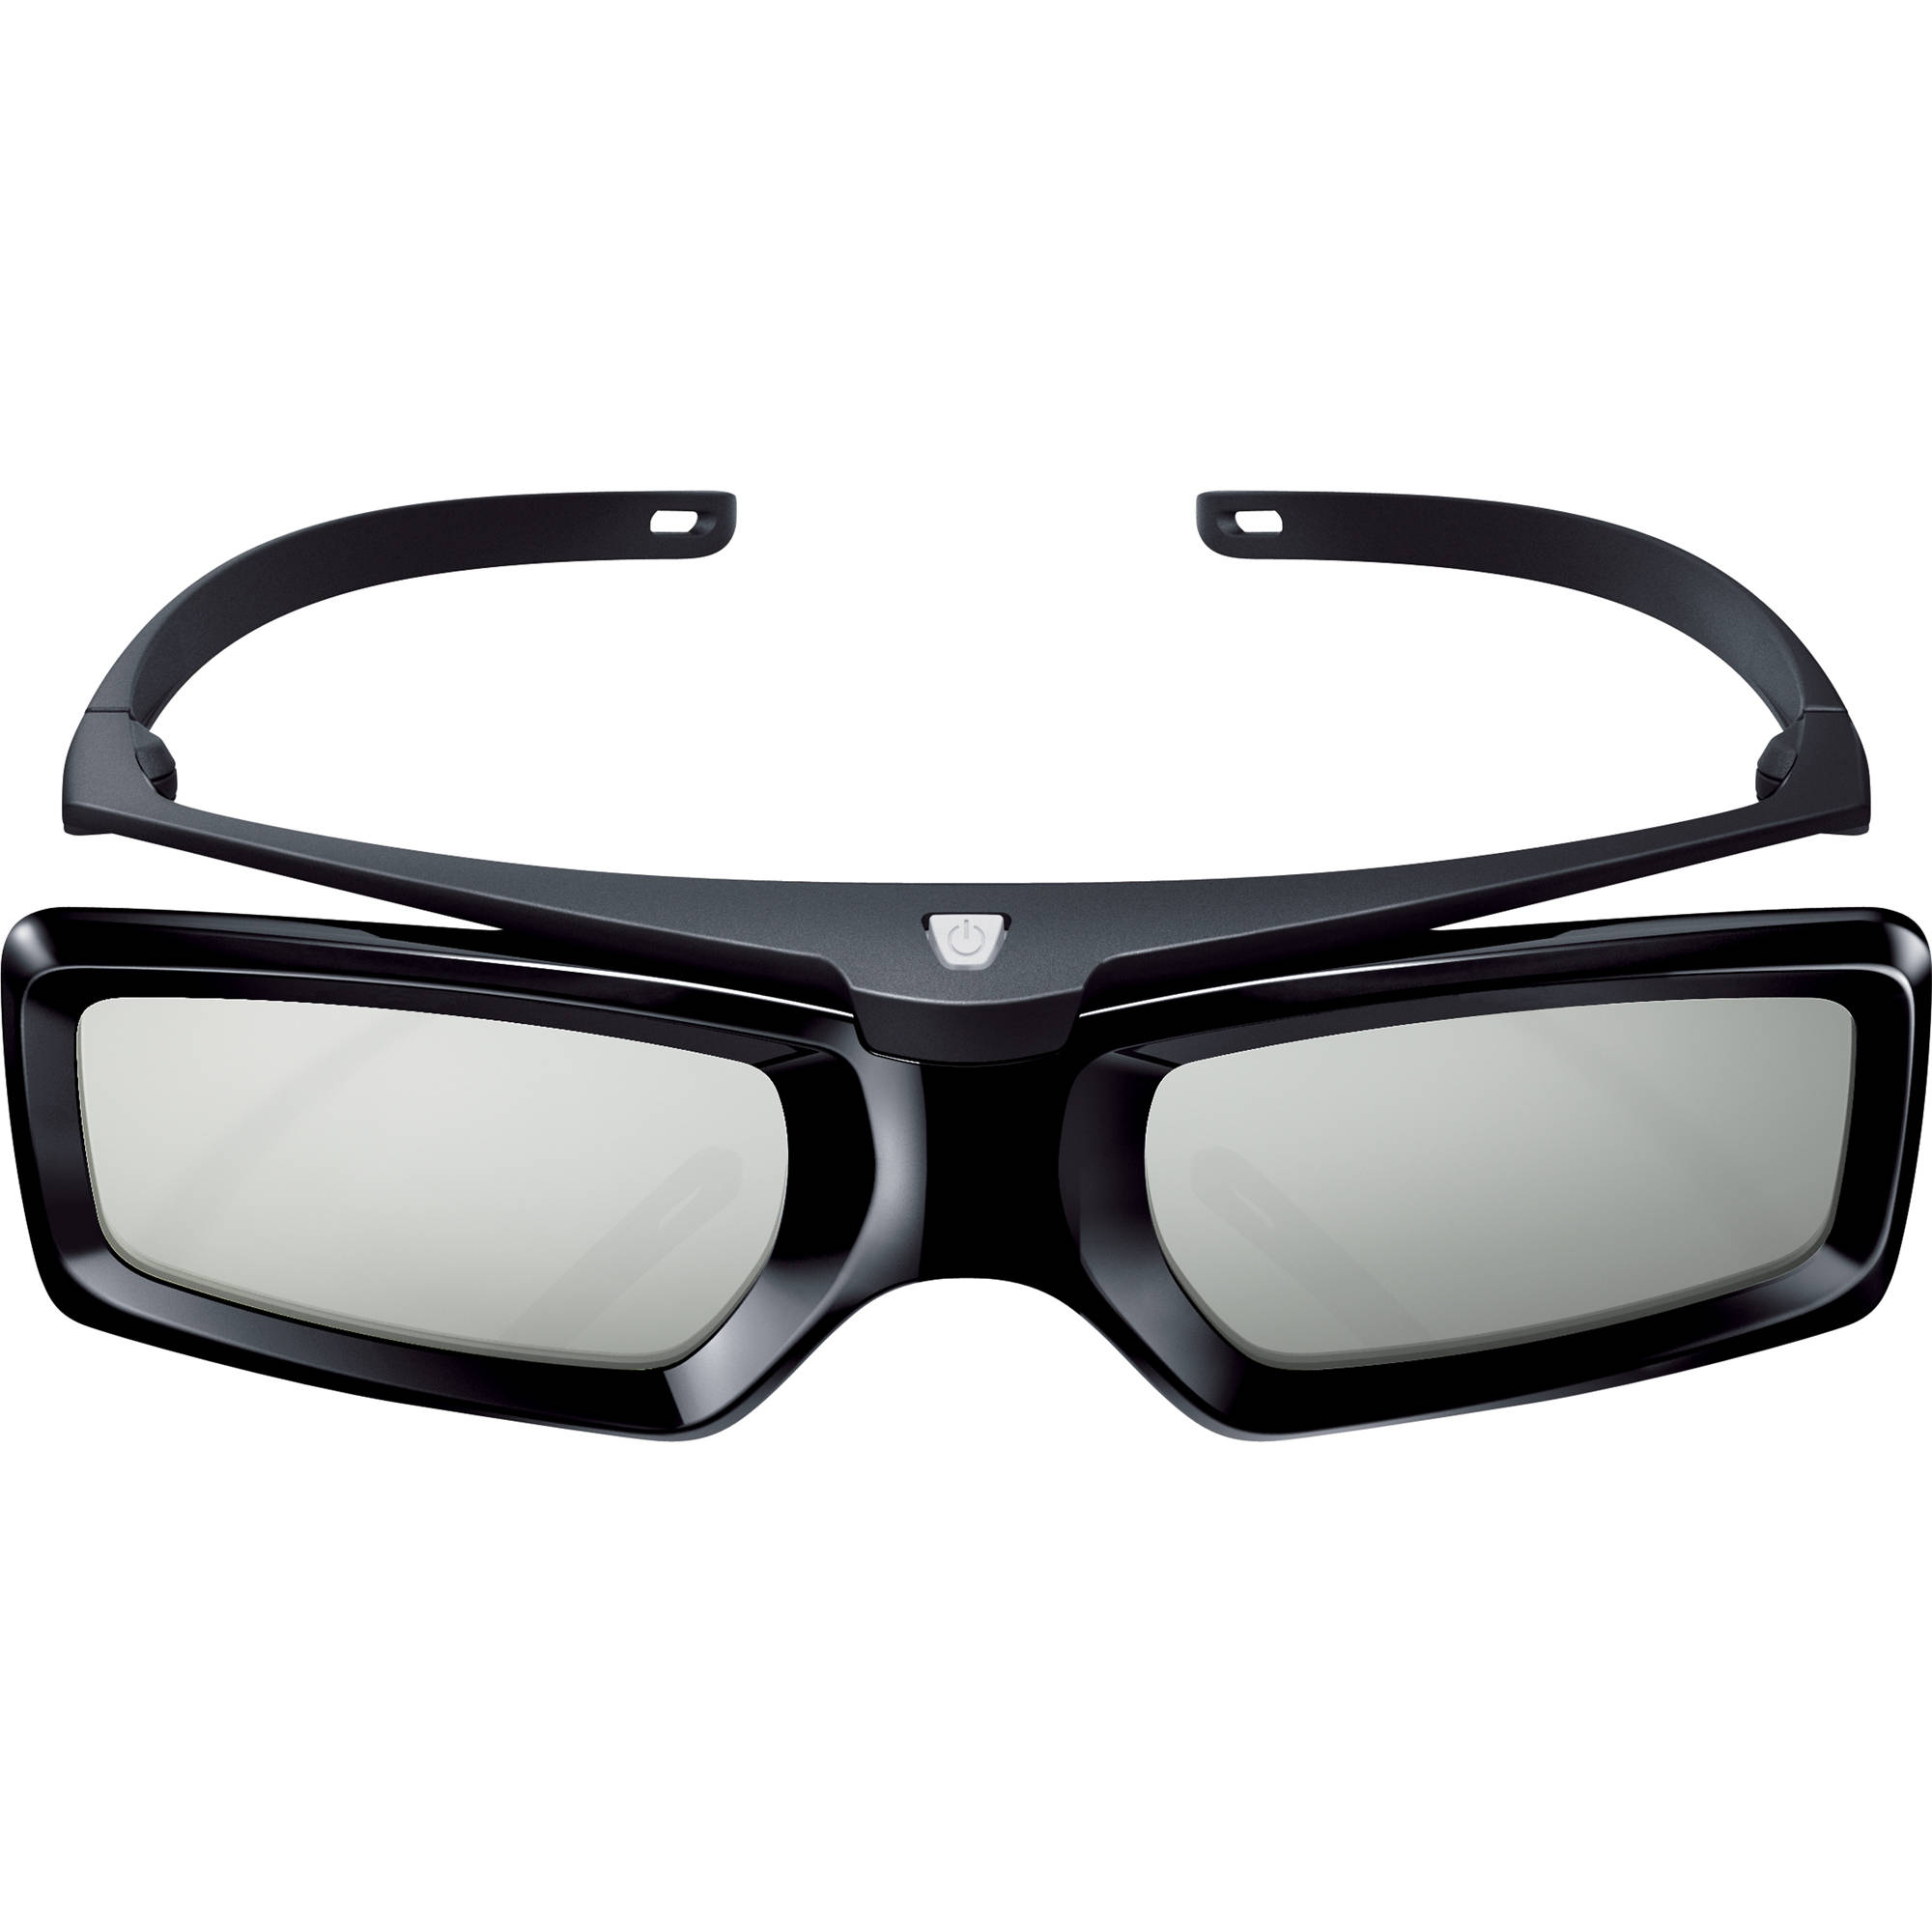 Sony Active 3D Glasses TDG-BT500A/US B&H Photo Video